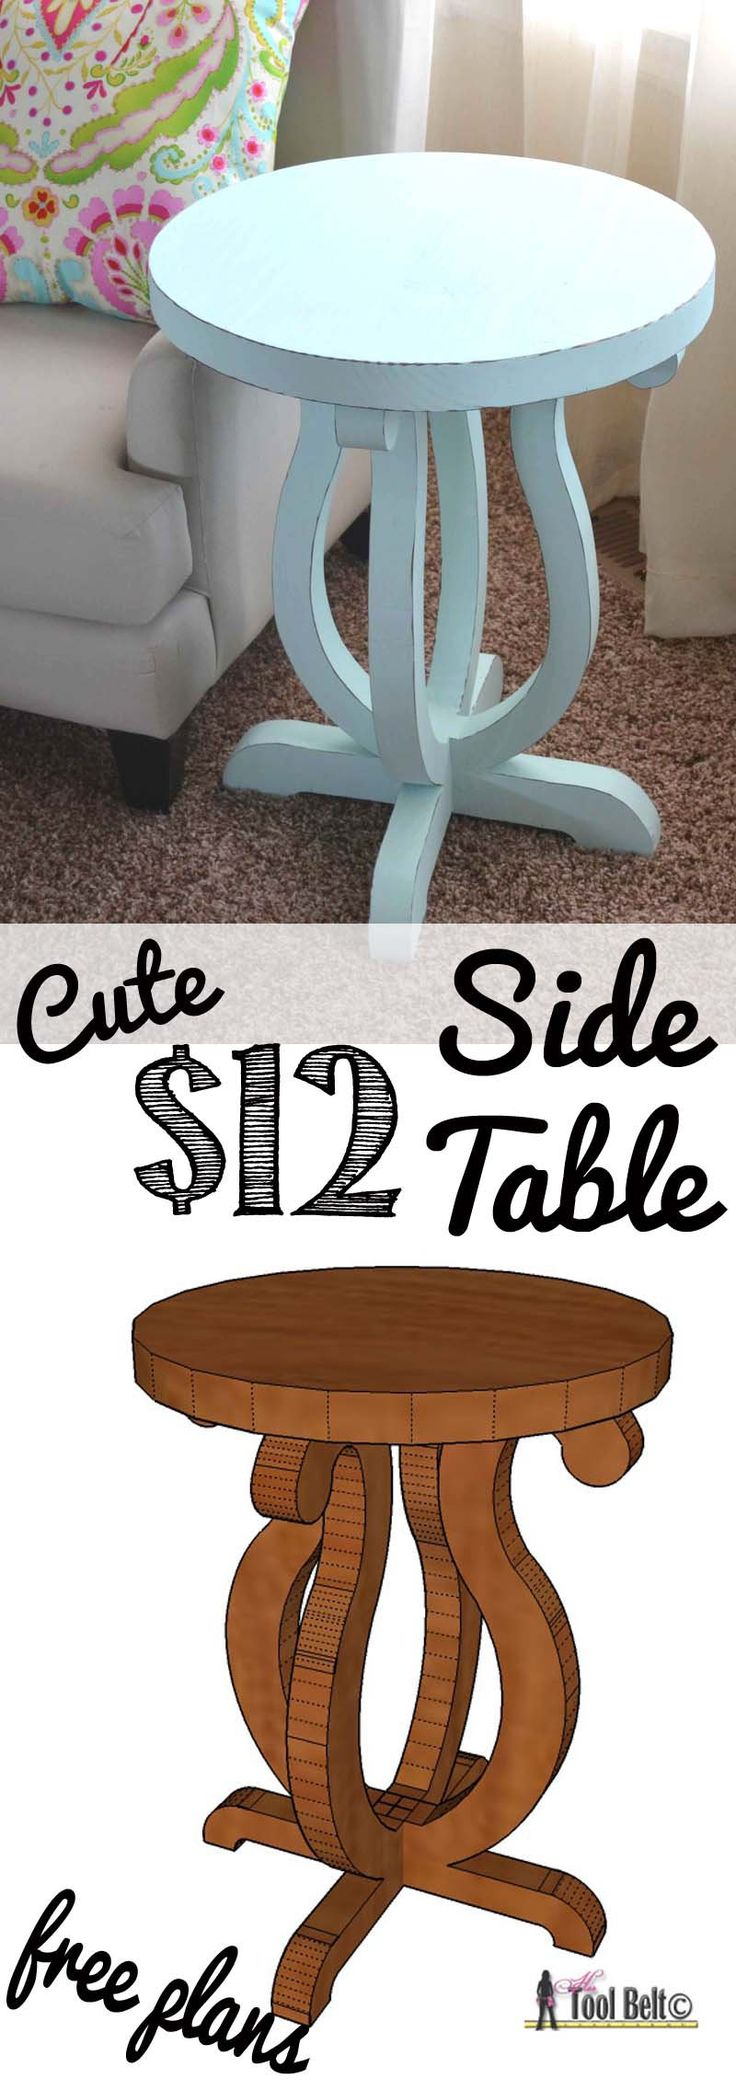 best ideas about make your own pottery homemade curvy side table